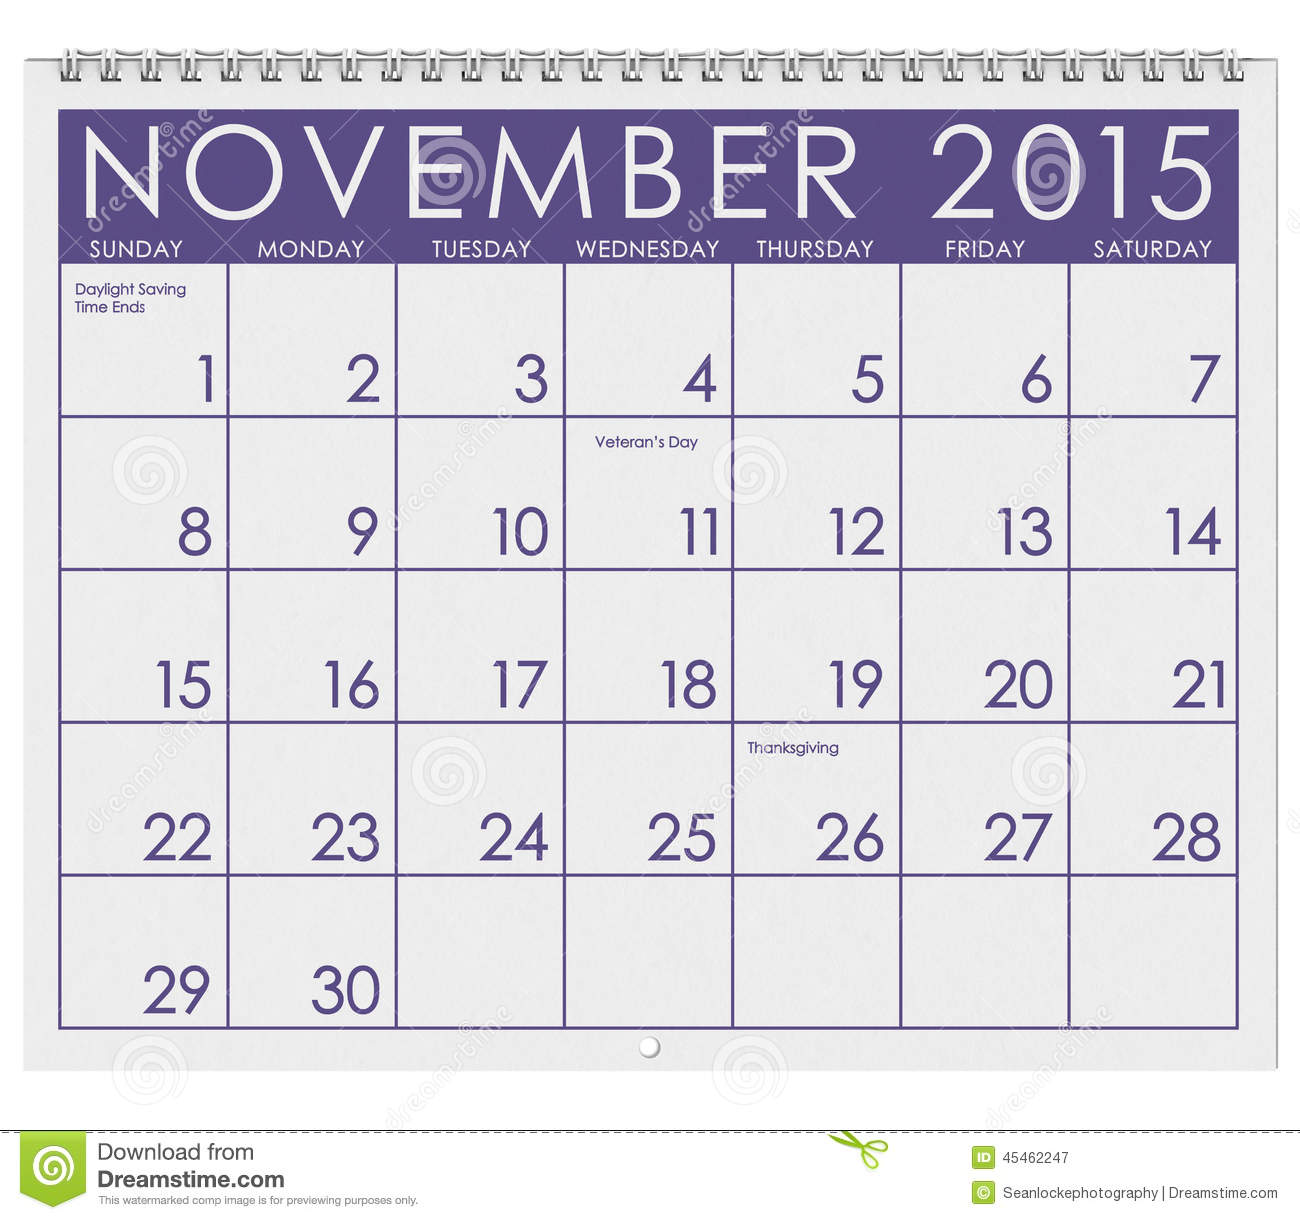 Holiday Calendar Schedule Fedex Holiday Schedule Openclosed Status 2015 Calendar Month Of November Stock Illustration